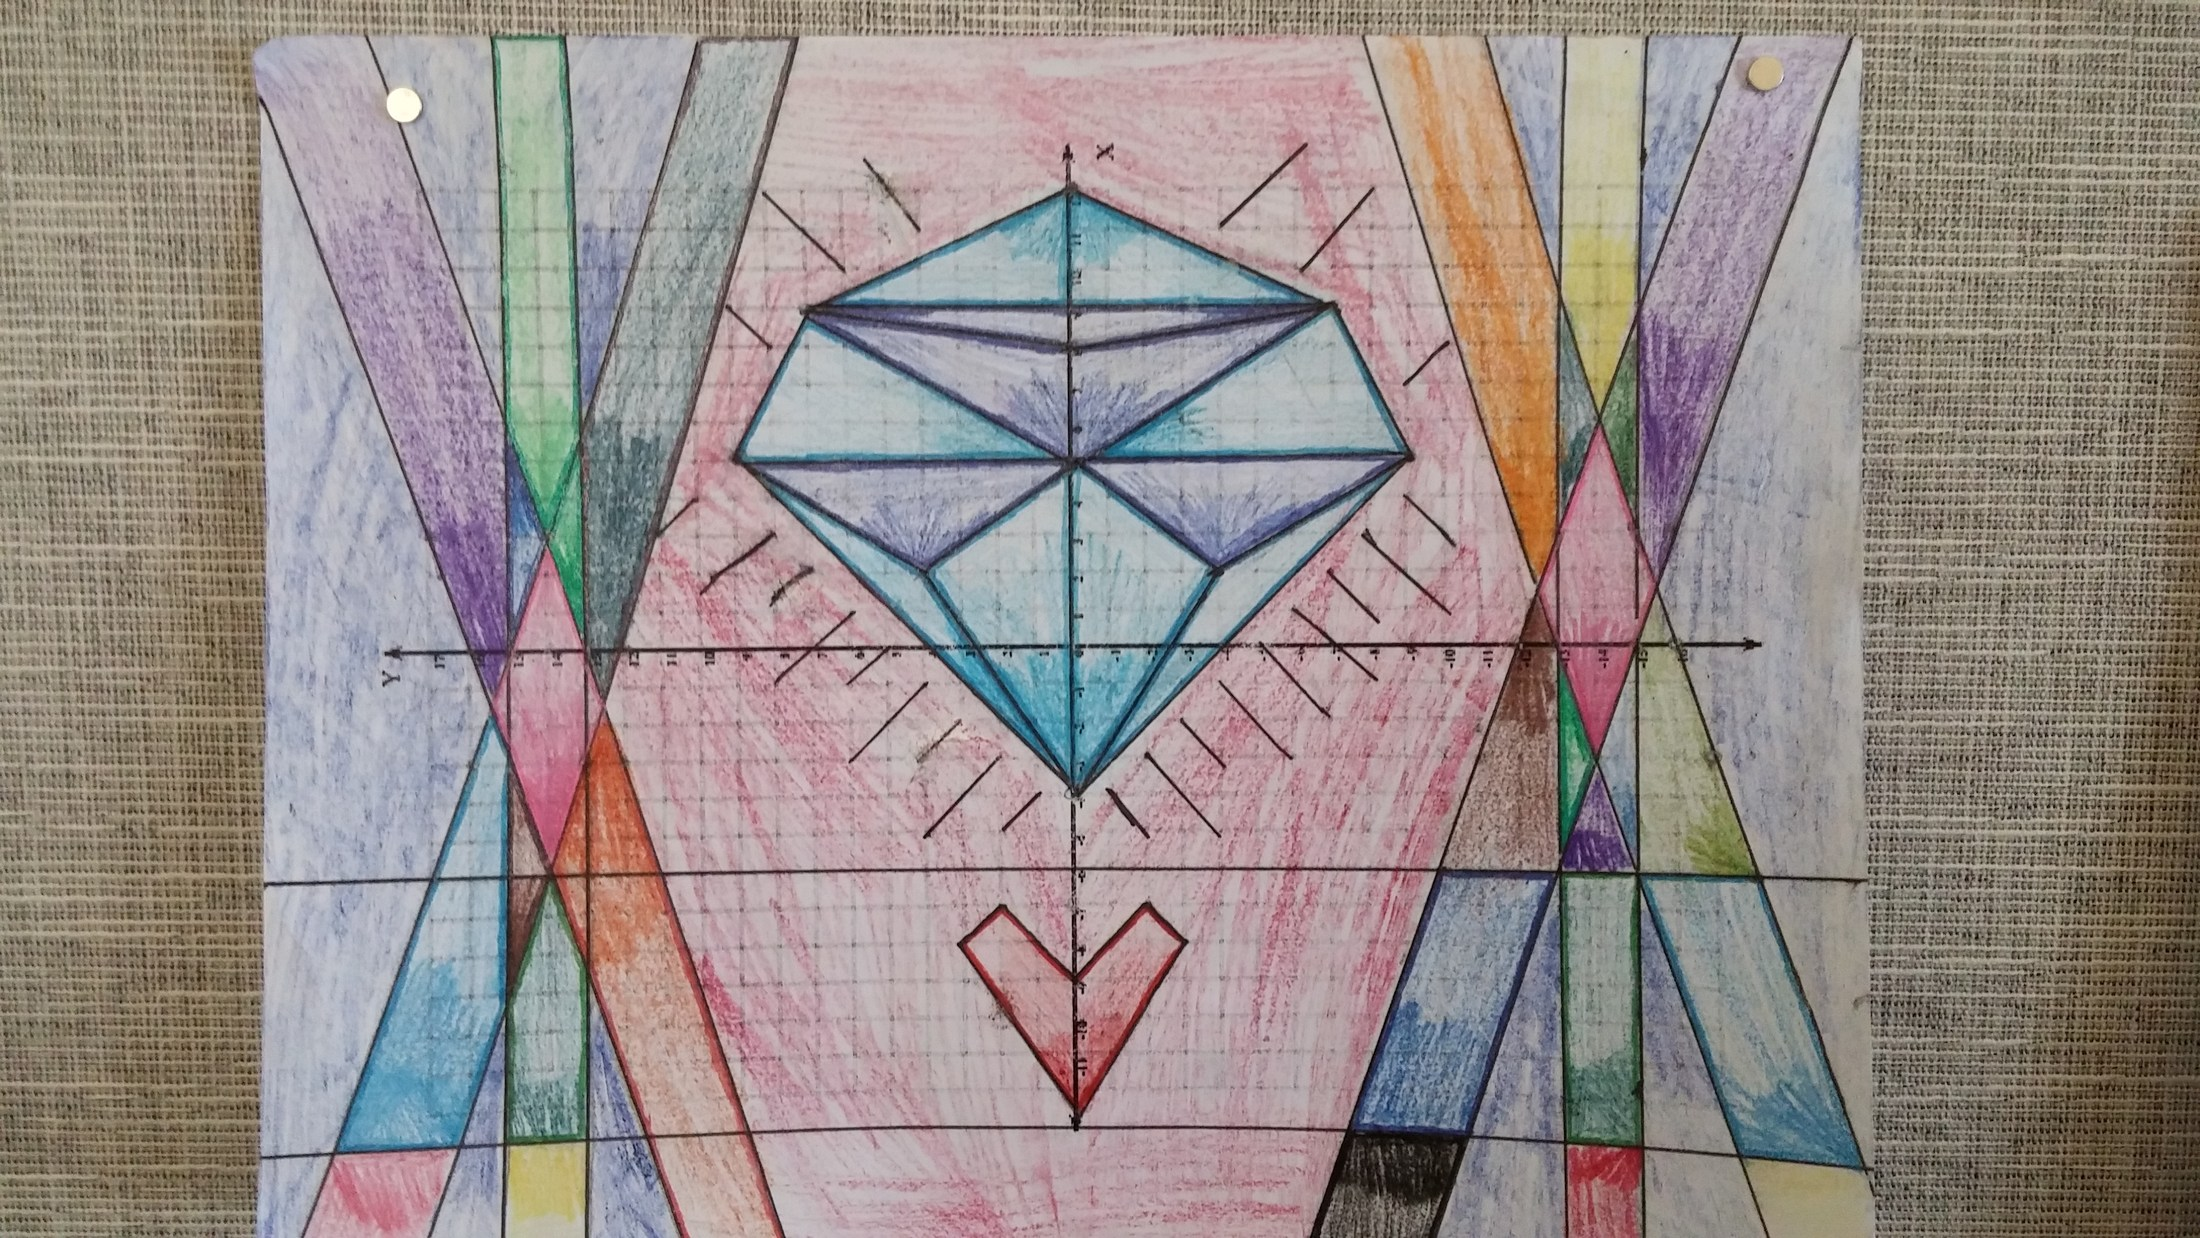 The seventh graders created their own blueprints for a stained glass window.